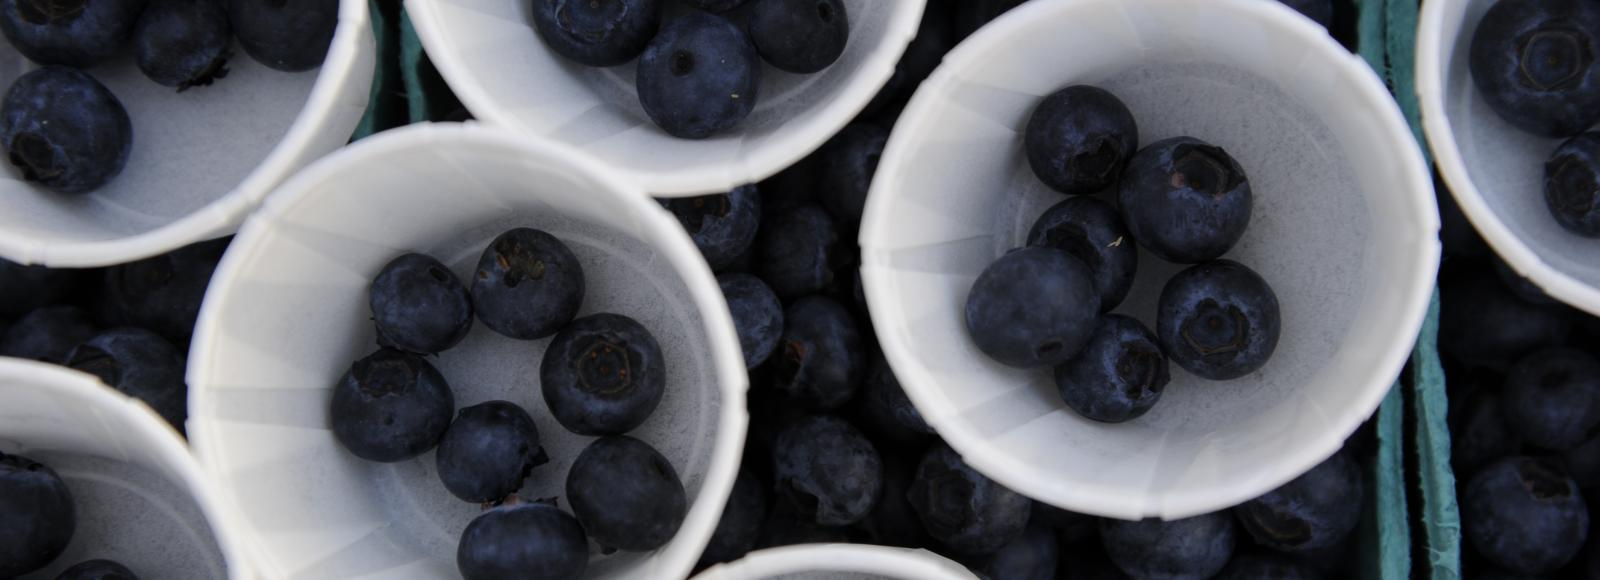 blueberries in individual cups